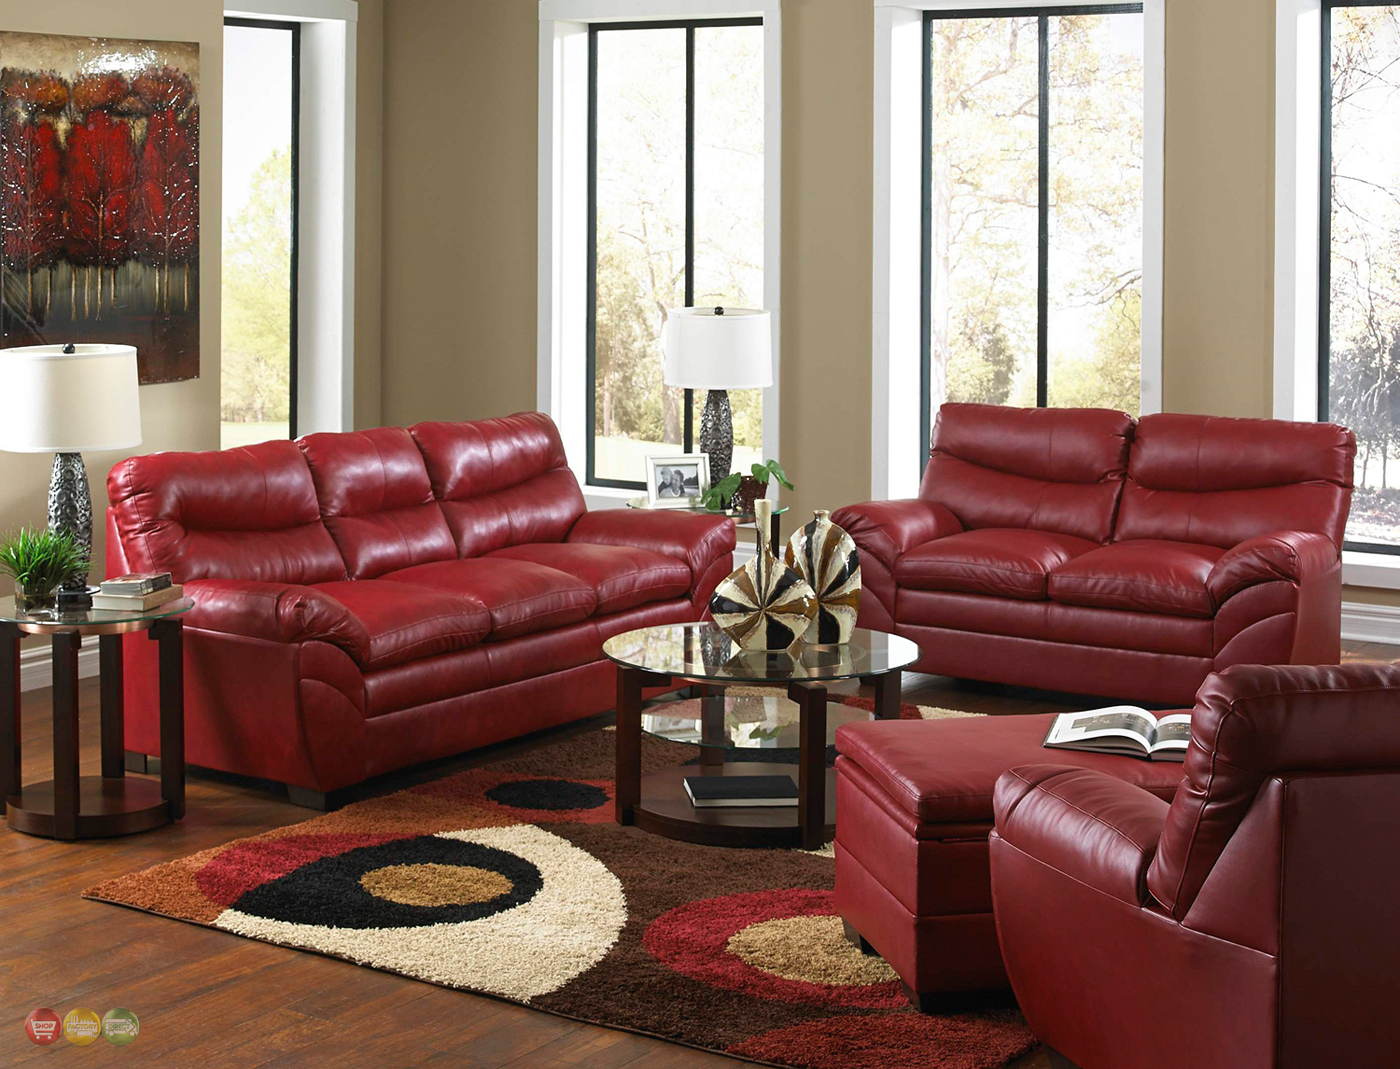 Casual contemporary red bonded leather sofa set living Living room sofa set